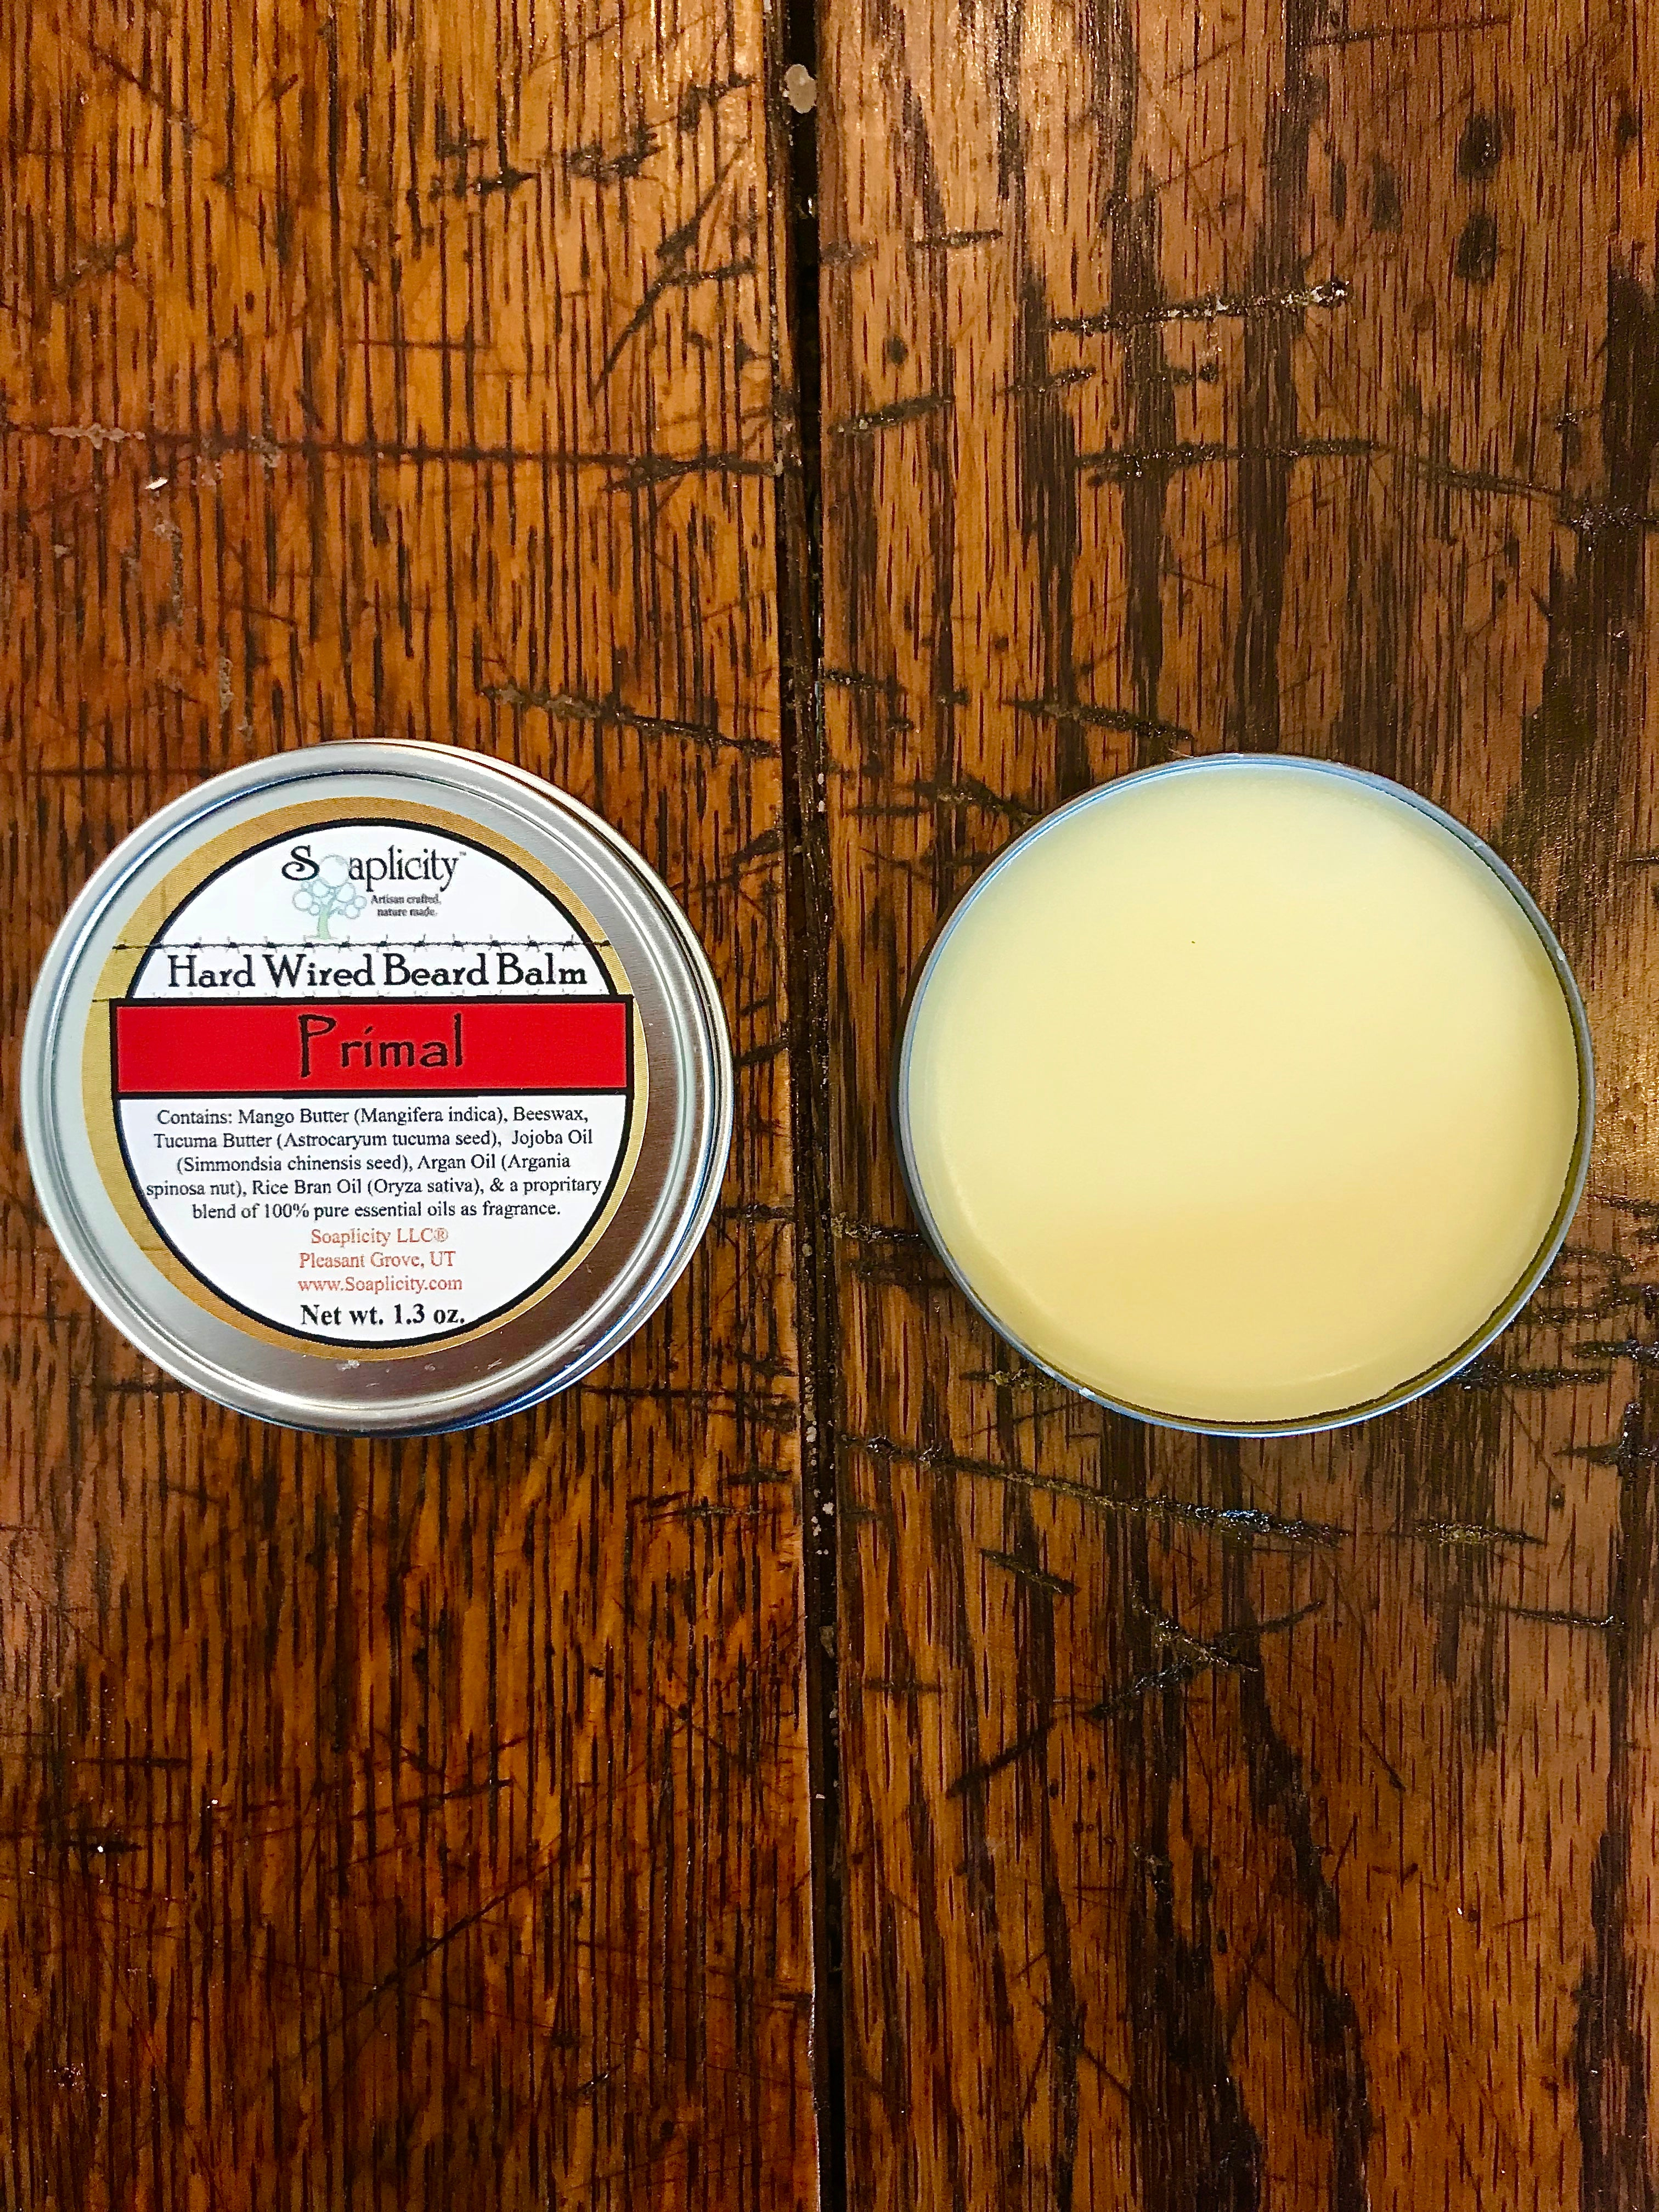 Hard Wired Beard Balm - Primal